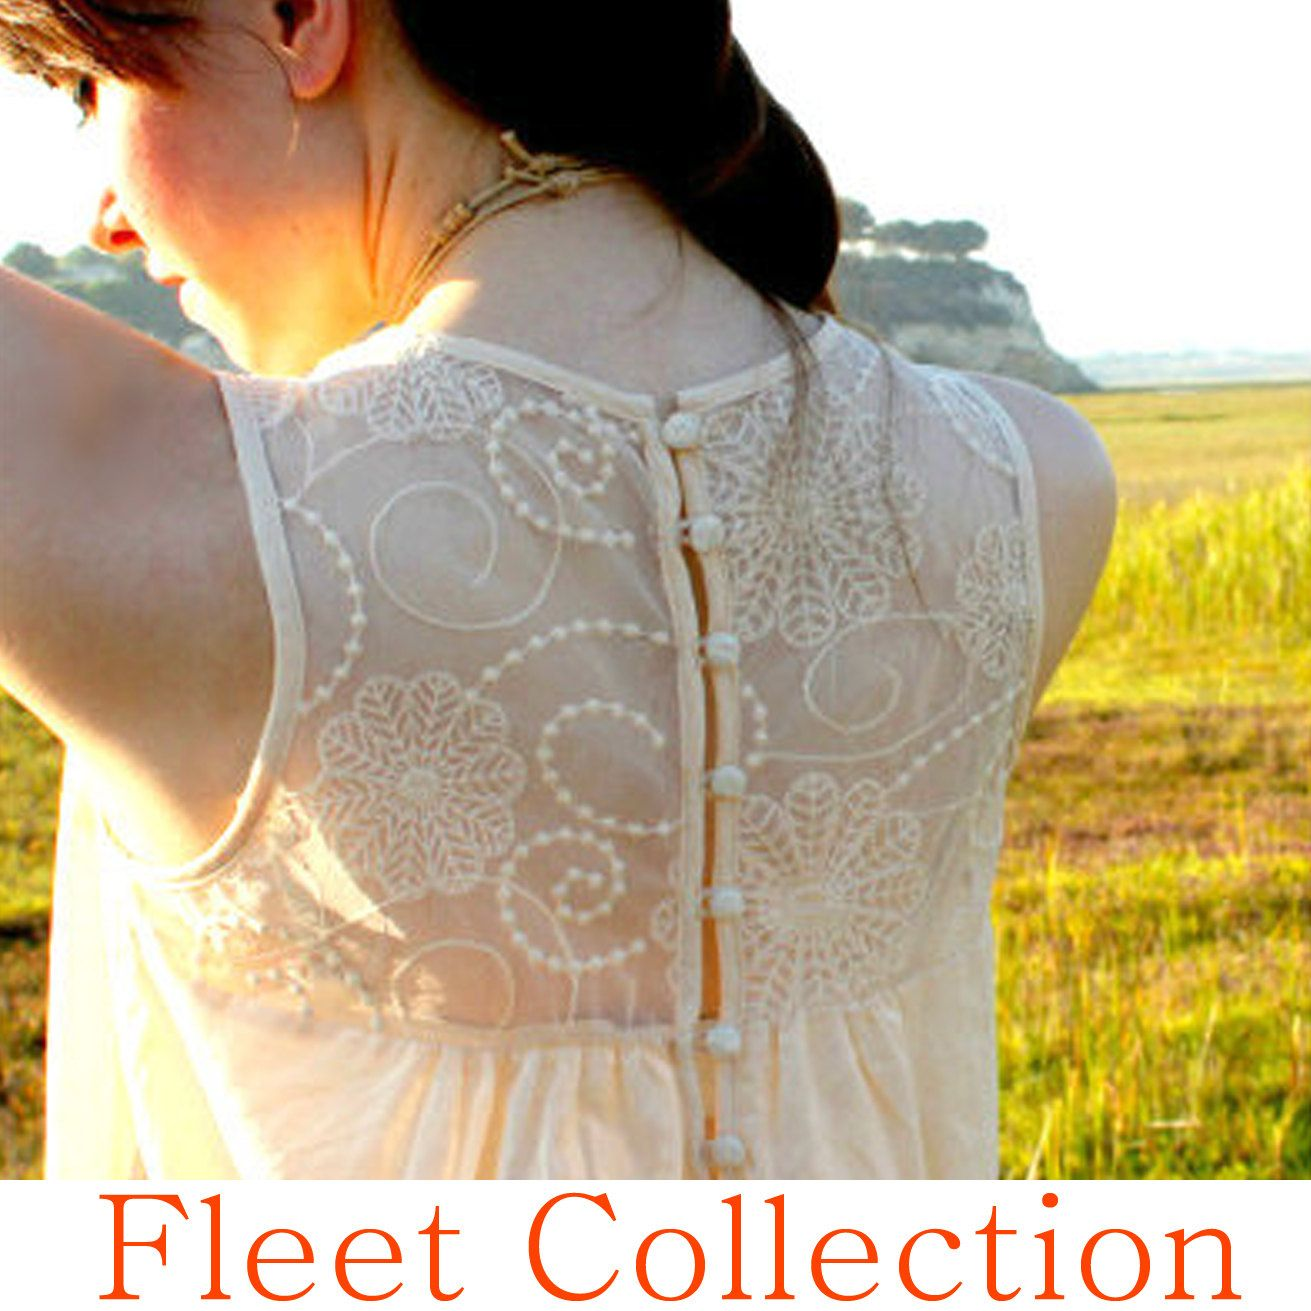 ANTIQUE LACE Sleeveless Tank Top Blouse with Sheer Lace Embroidery in Ivory. $34.00, via Etsy.